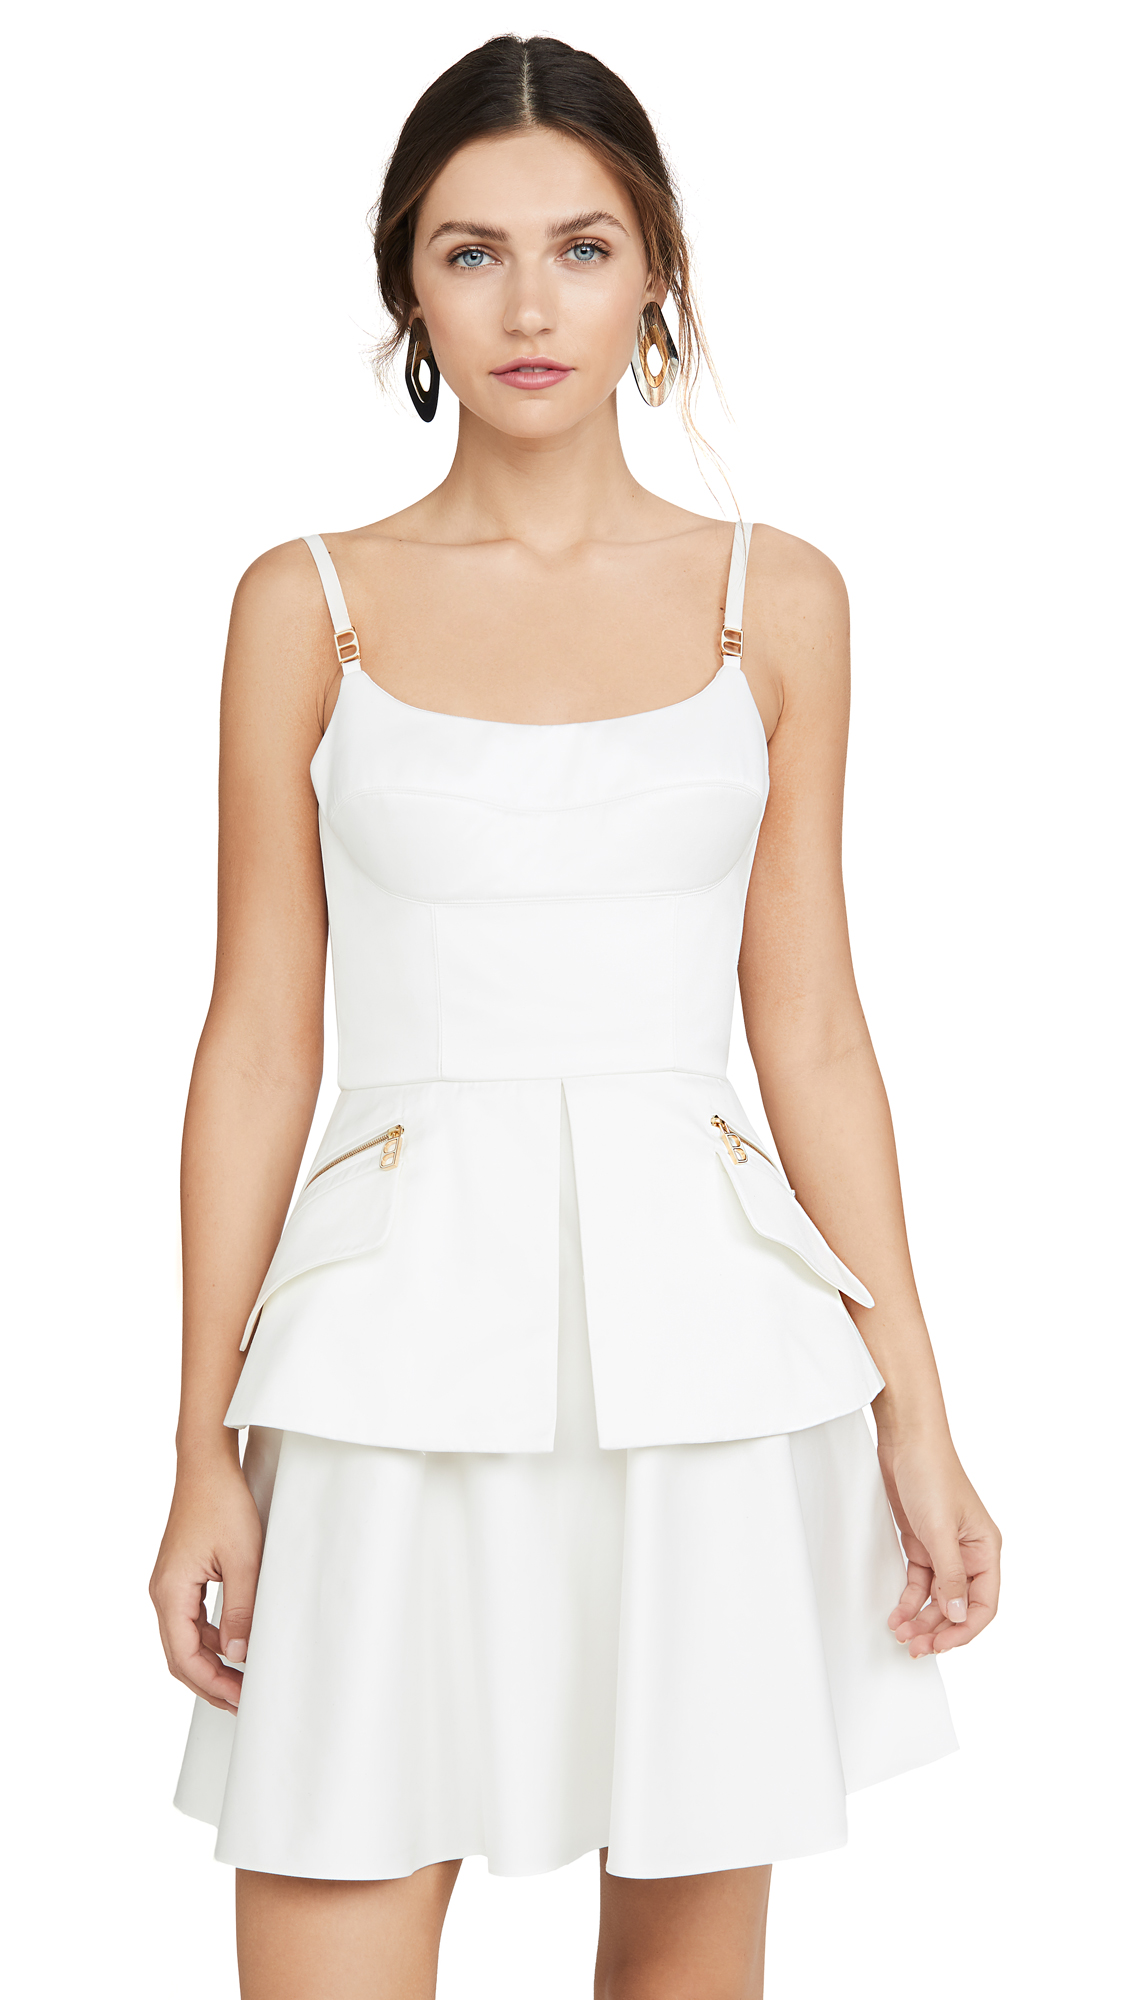 Brandon Maxwell Bustier Mini Dress with Peplum - White